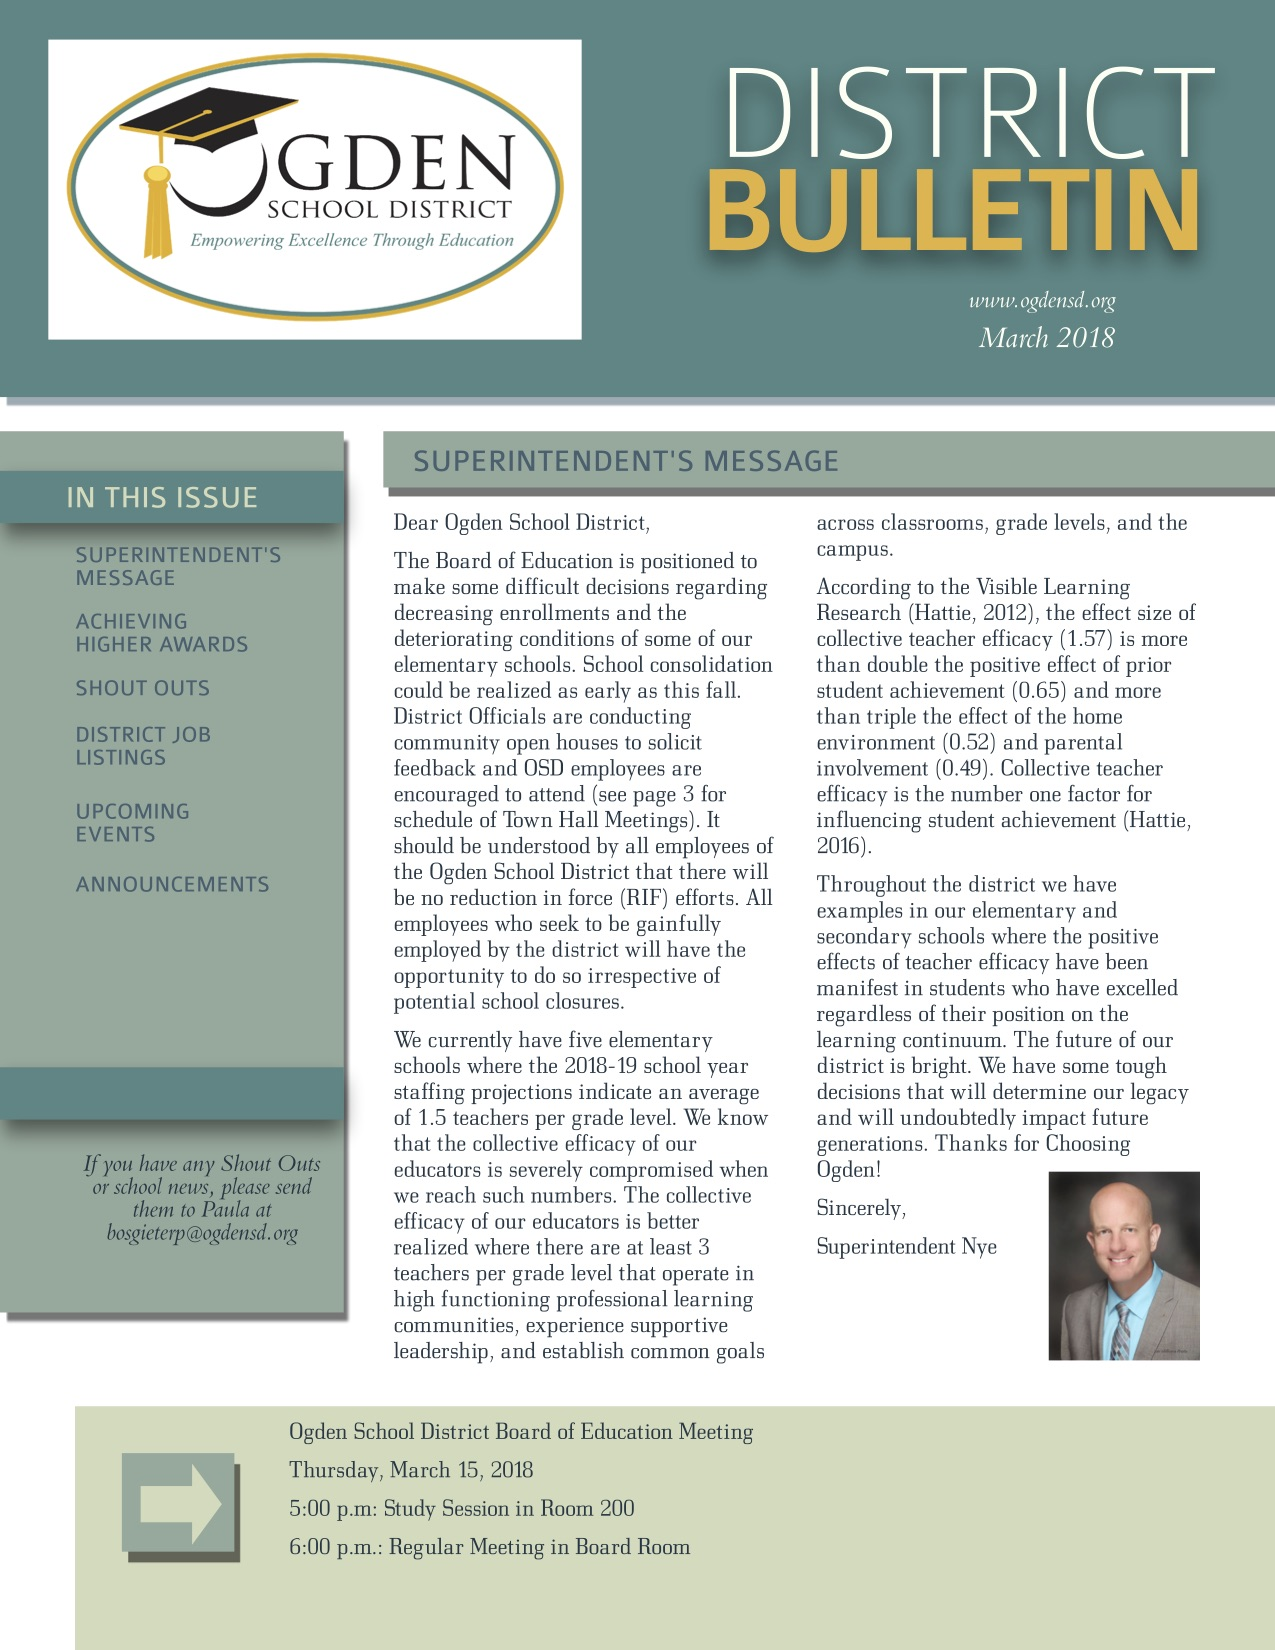 District Bulletin for March